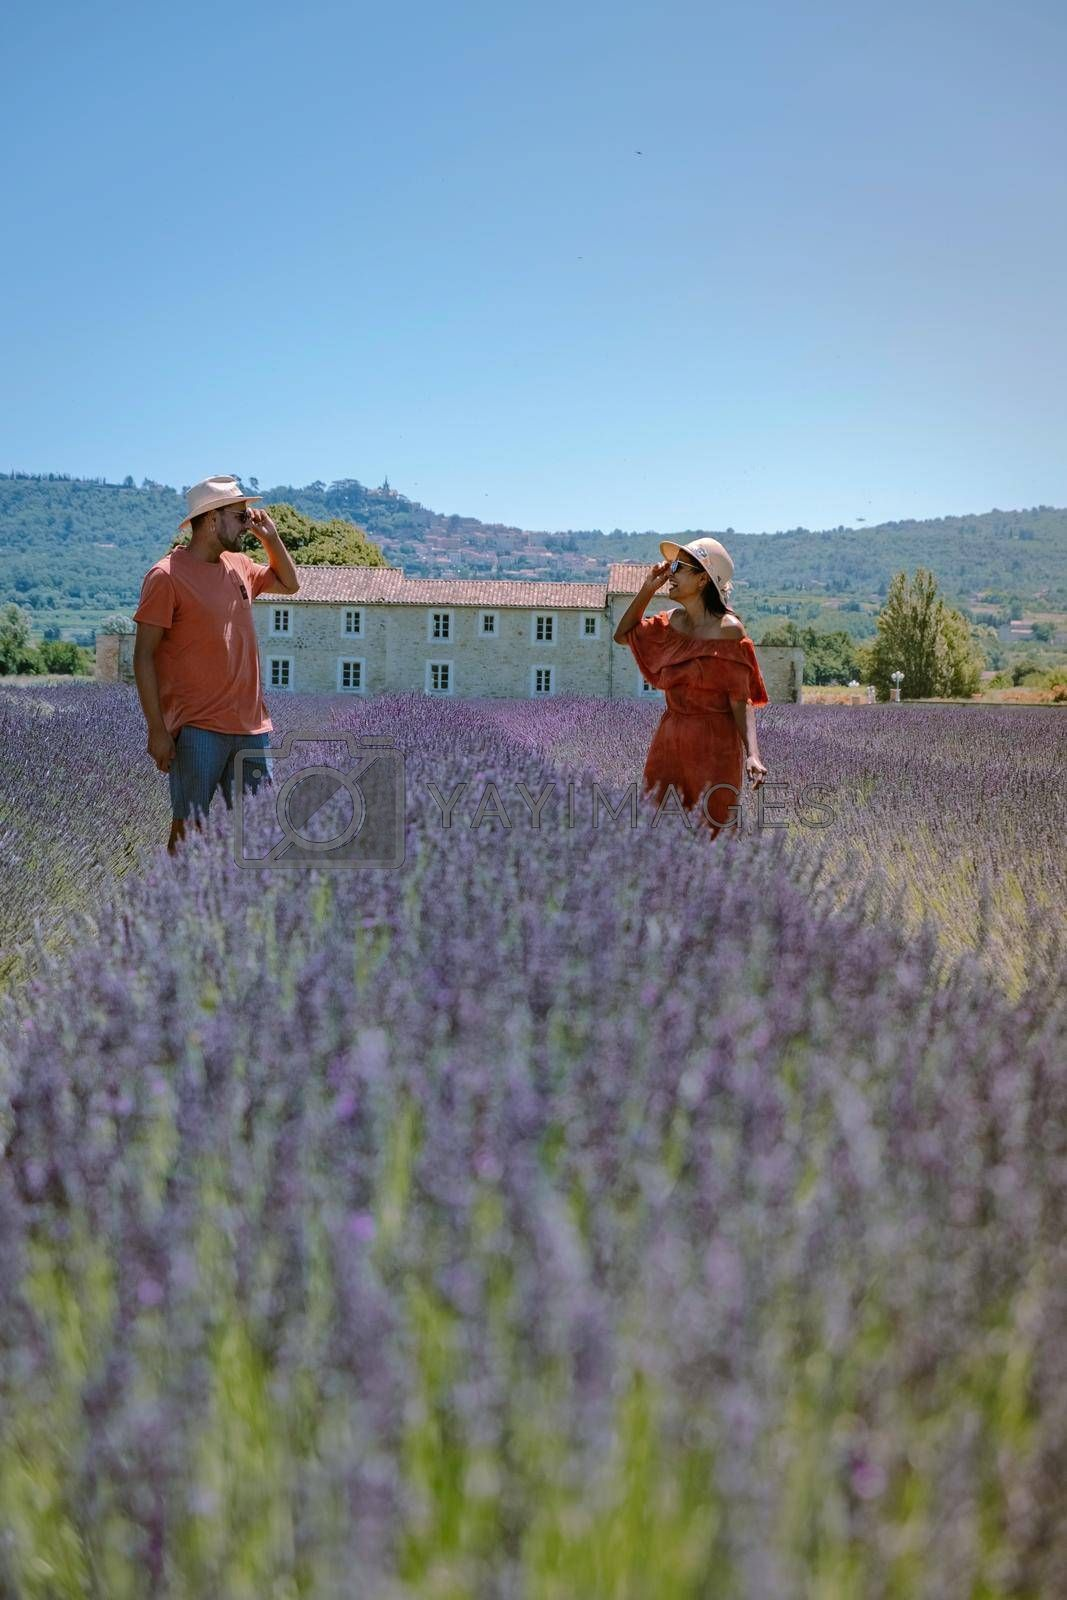 couple visit the old town of Gordes Provence,Blooming purple lavender fields at Senanque monastery, Provence, southern France. Europe